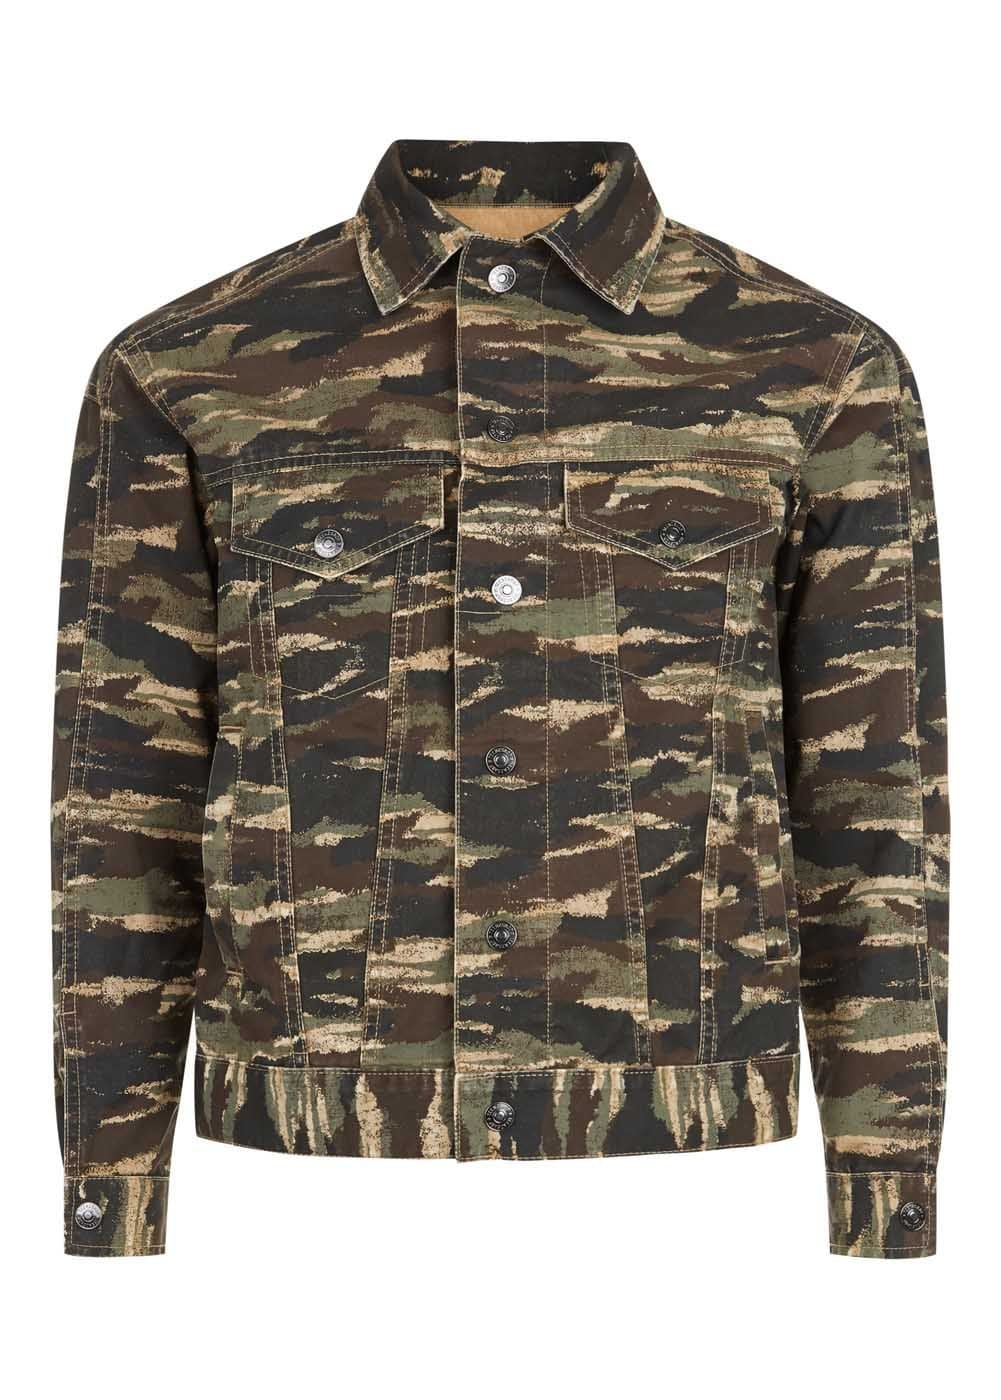 TeenzShop Youth Boys Camo Jacket